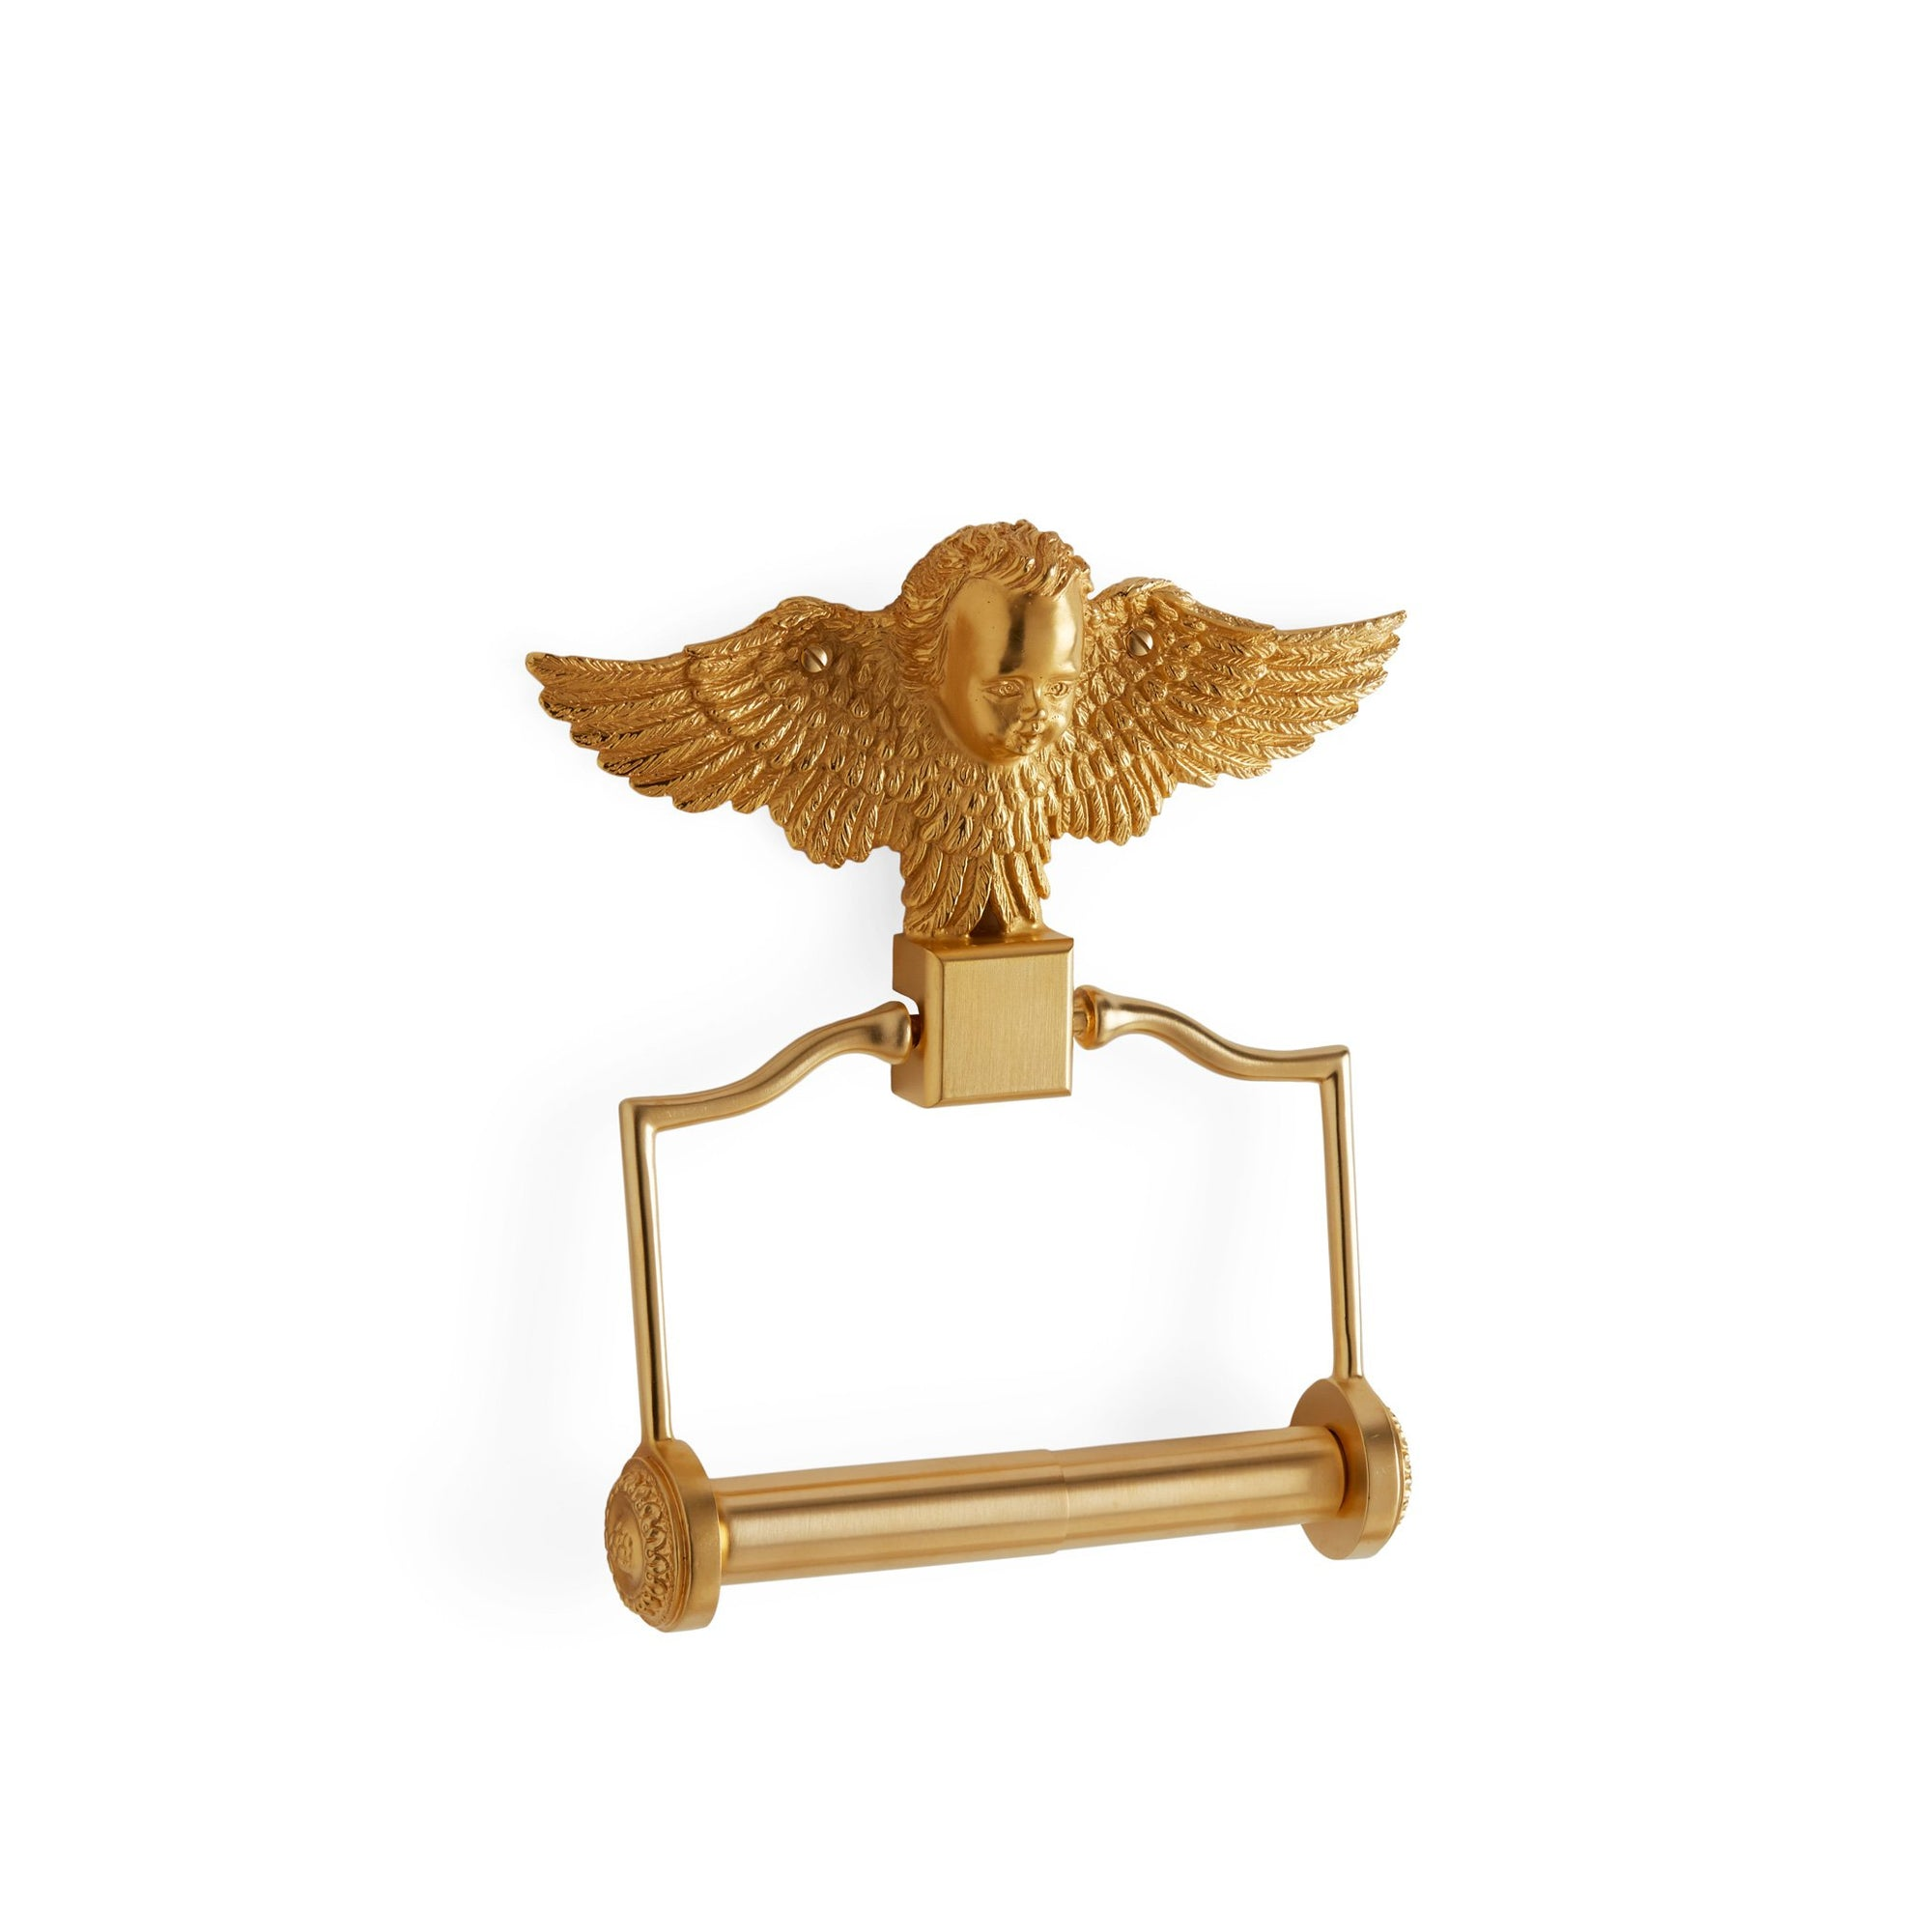 3530-GP Sherle Wagner International Cherub Paper Holder in Gold Plate metal finish